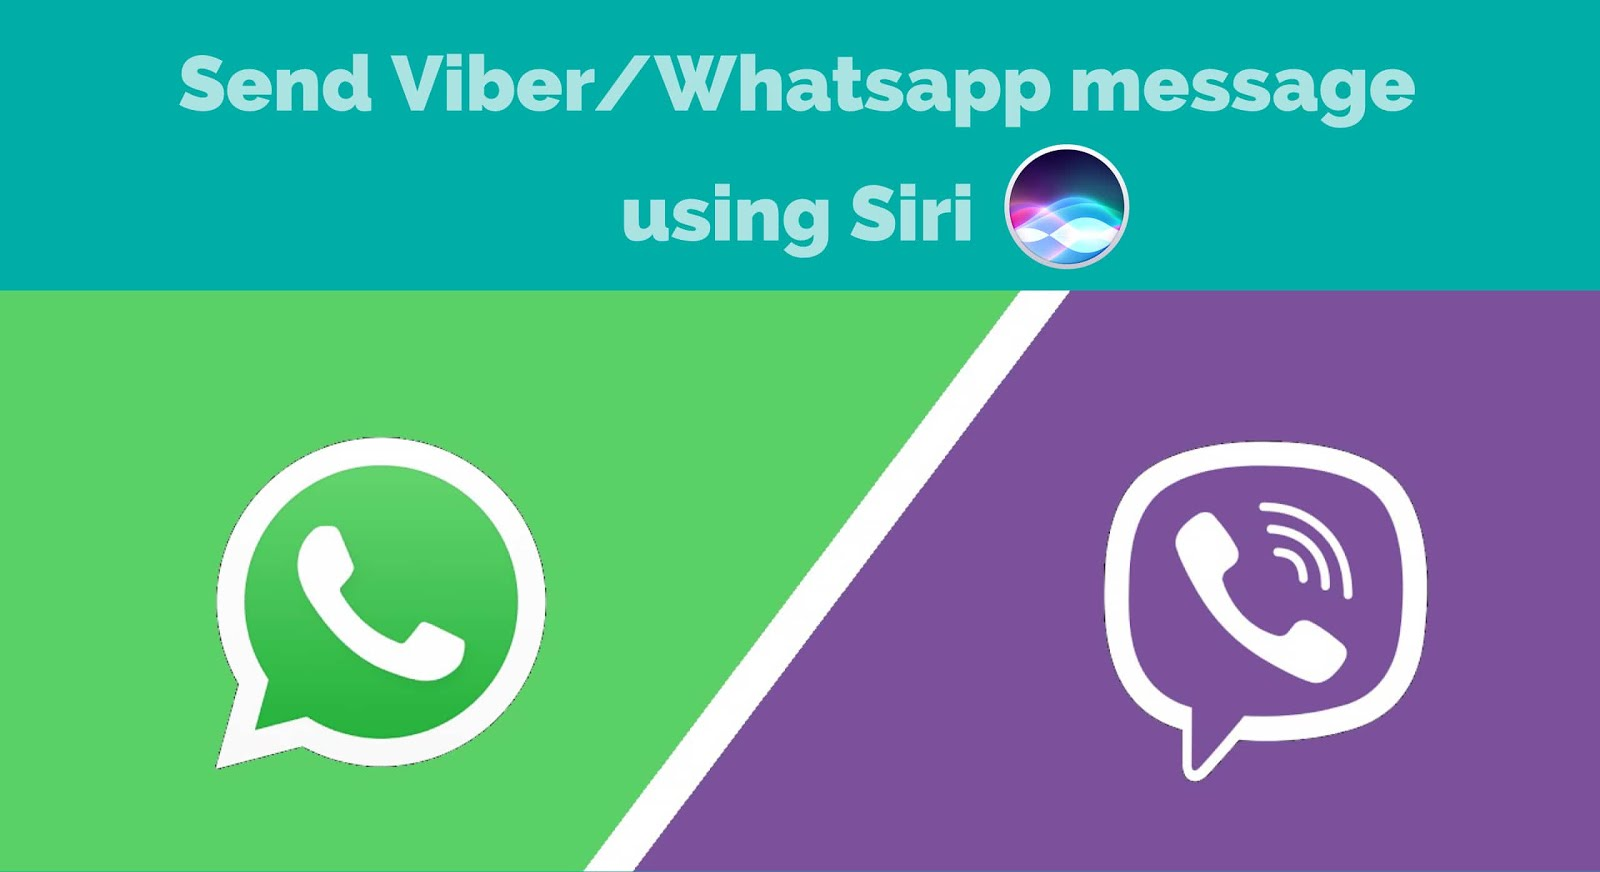 How to send a message on viberwhatsapp using siri in ios 10 how to send a message on viberwhatsapp using siri in ios 10 buycottarizona Gallery